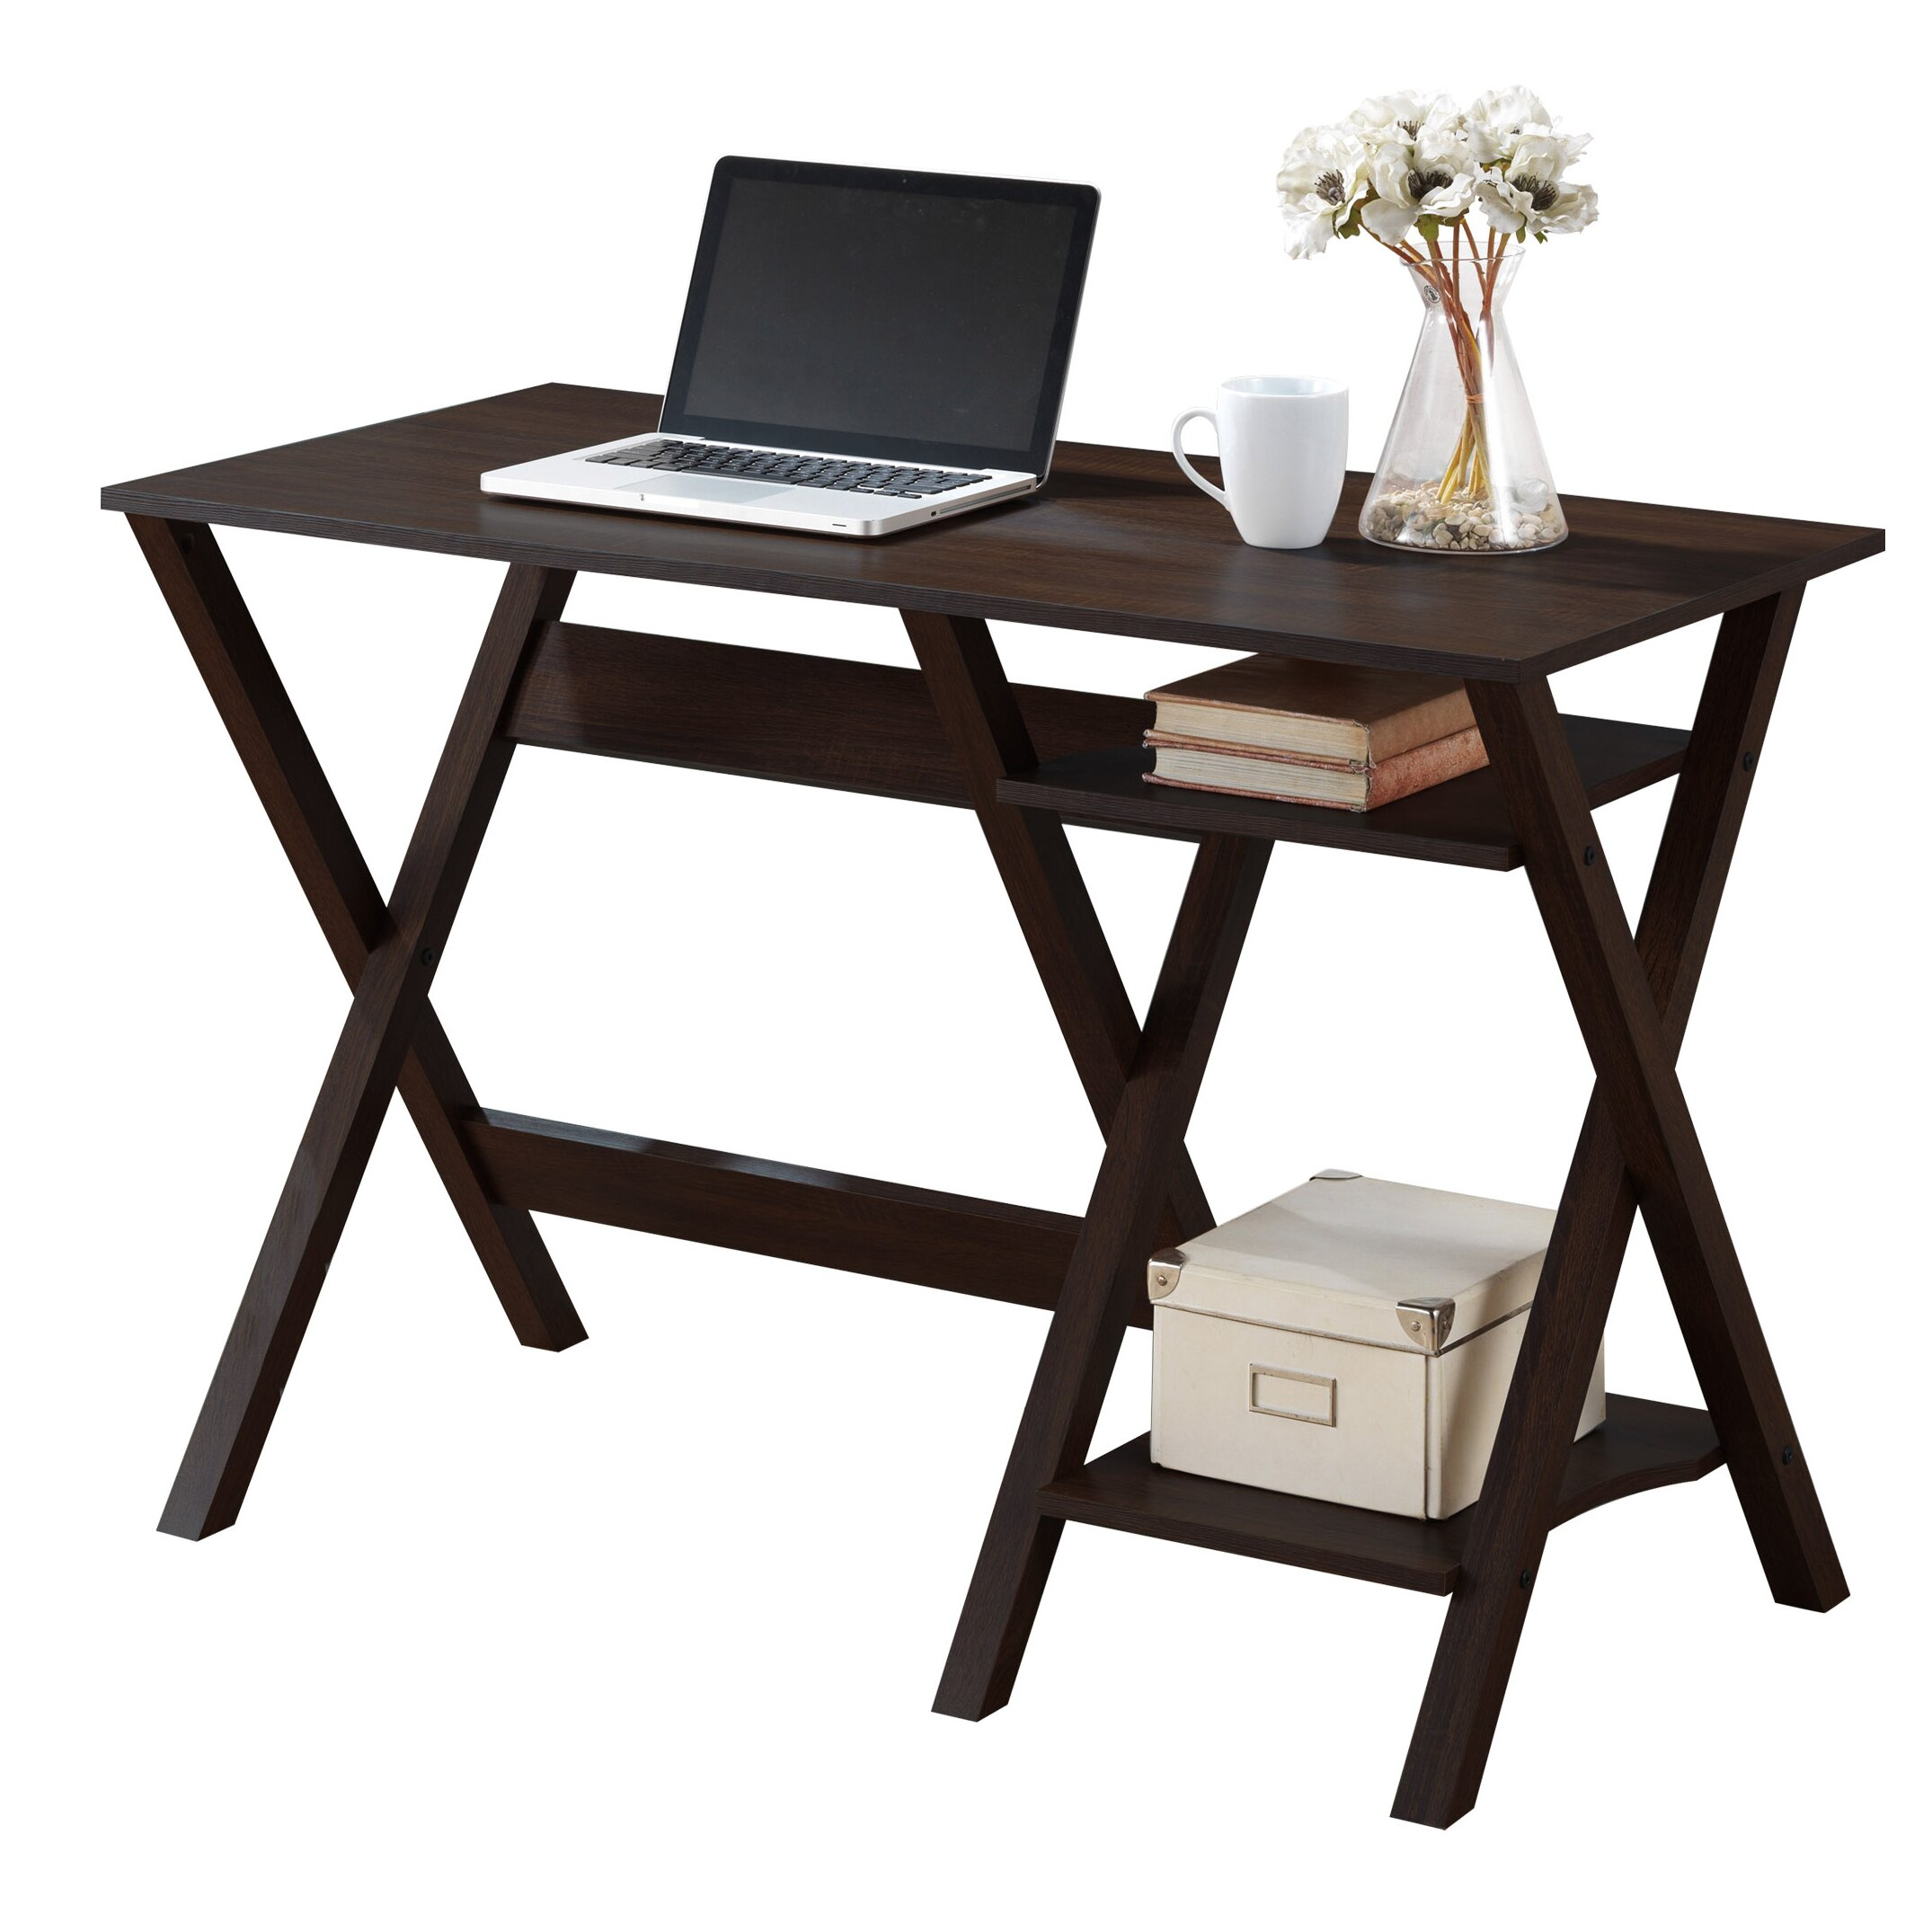 Very Impressive portraiture of CorLiving Folio Writing Desk with 2 Lower Shelves & Reviews Wayfair with #7C604A color and 2150x2150 pixels